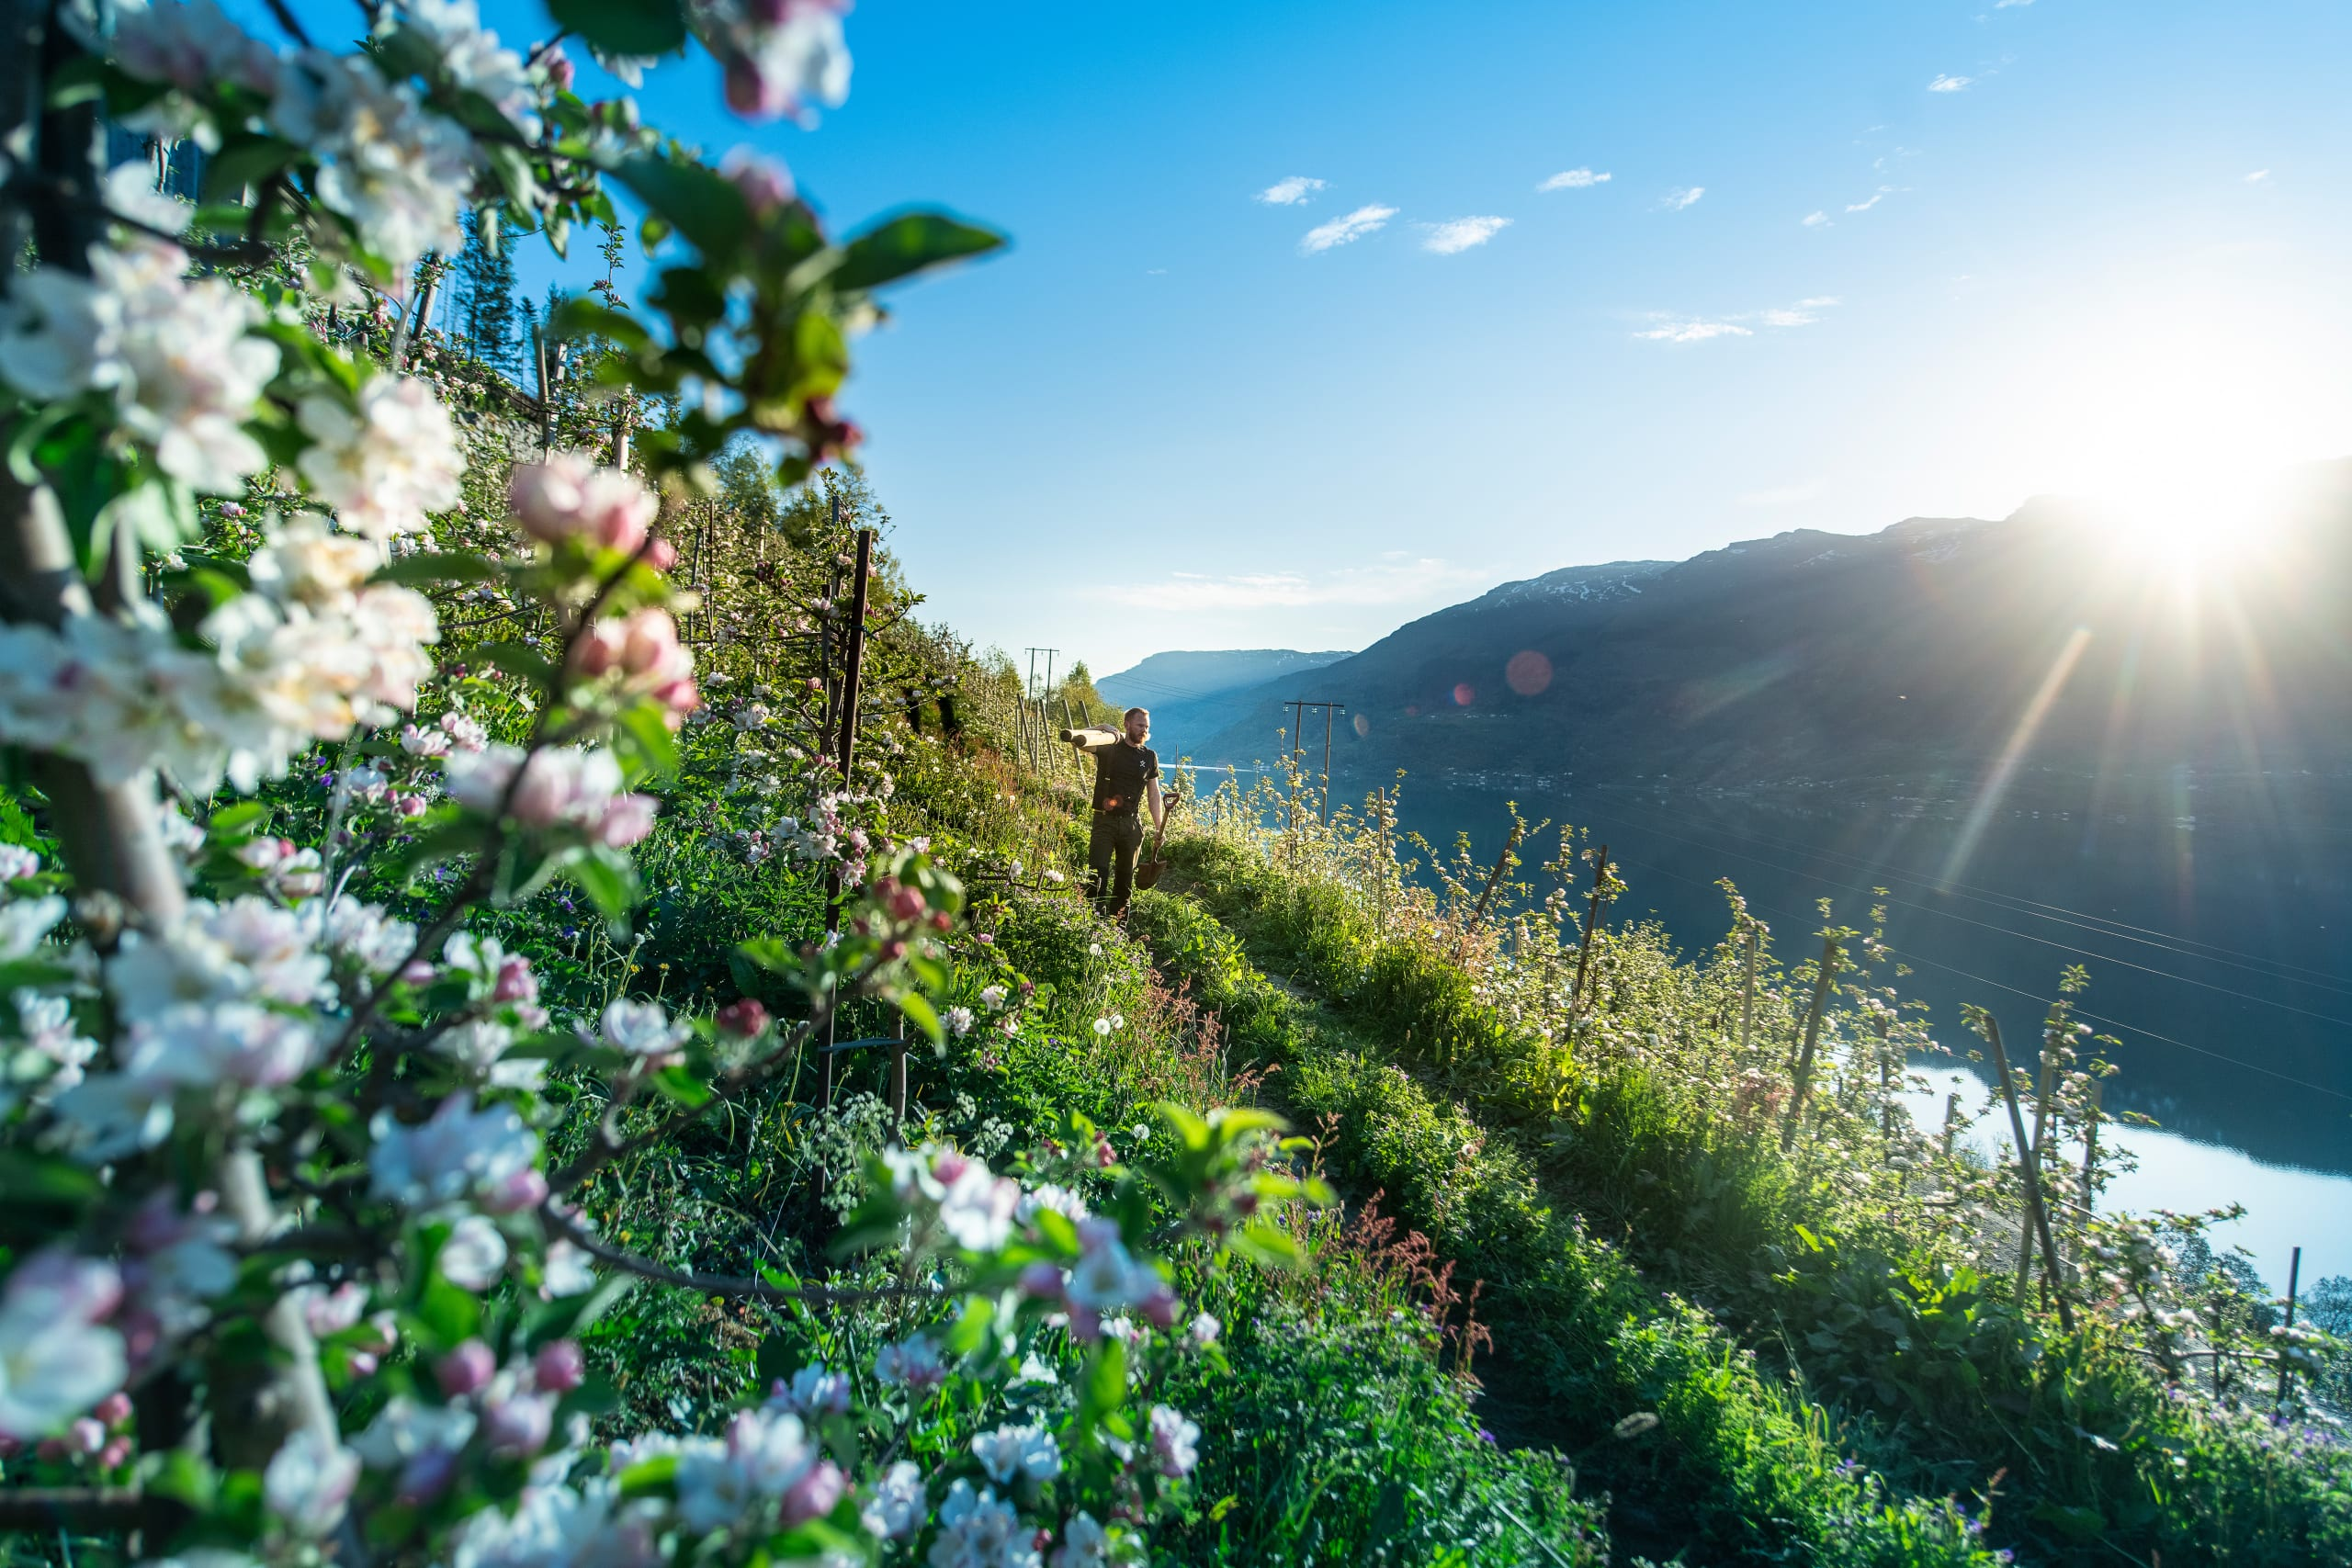 Blooming fruit trees at Bleie Farm in Hardanger